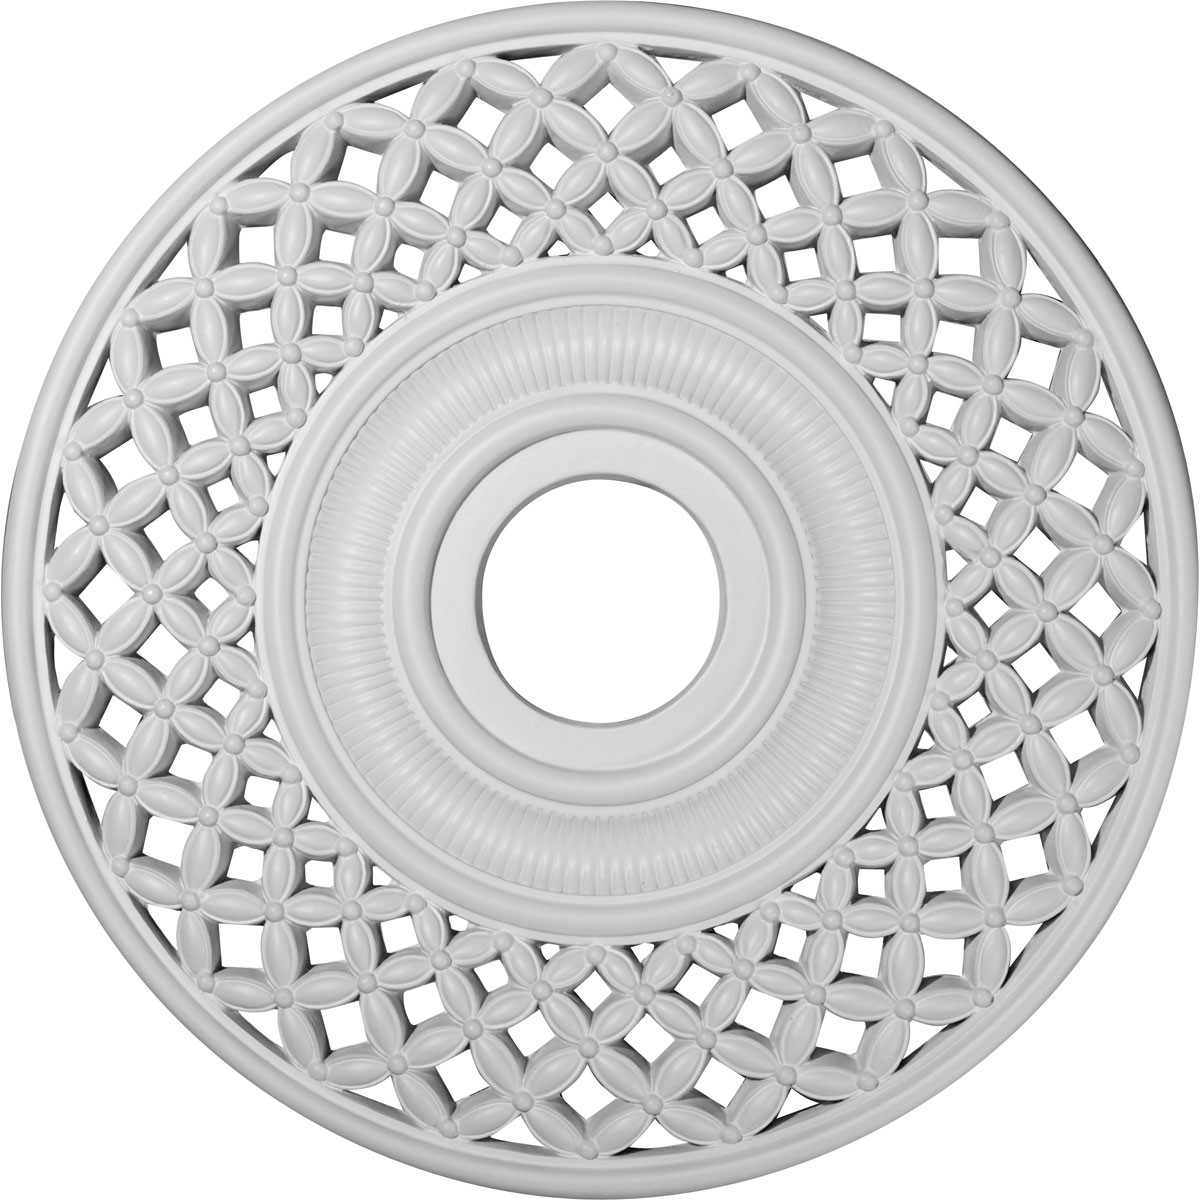 """EM-CM22RB - 22 1/4""""OD x 4 3/4""""ID x 1 1/4""""P Robin Ceiling Medallion (Fits Canopies up to 6 1/4"""")"""